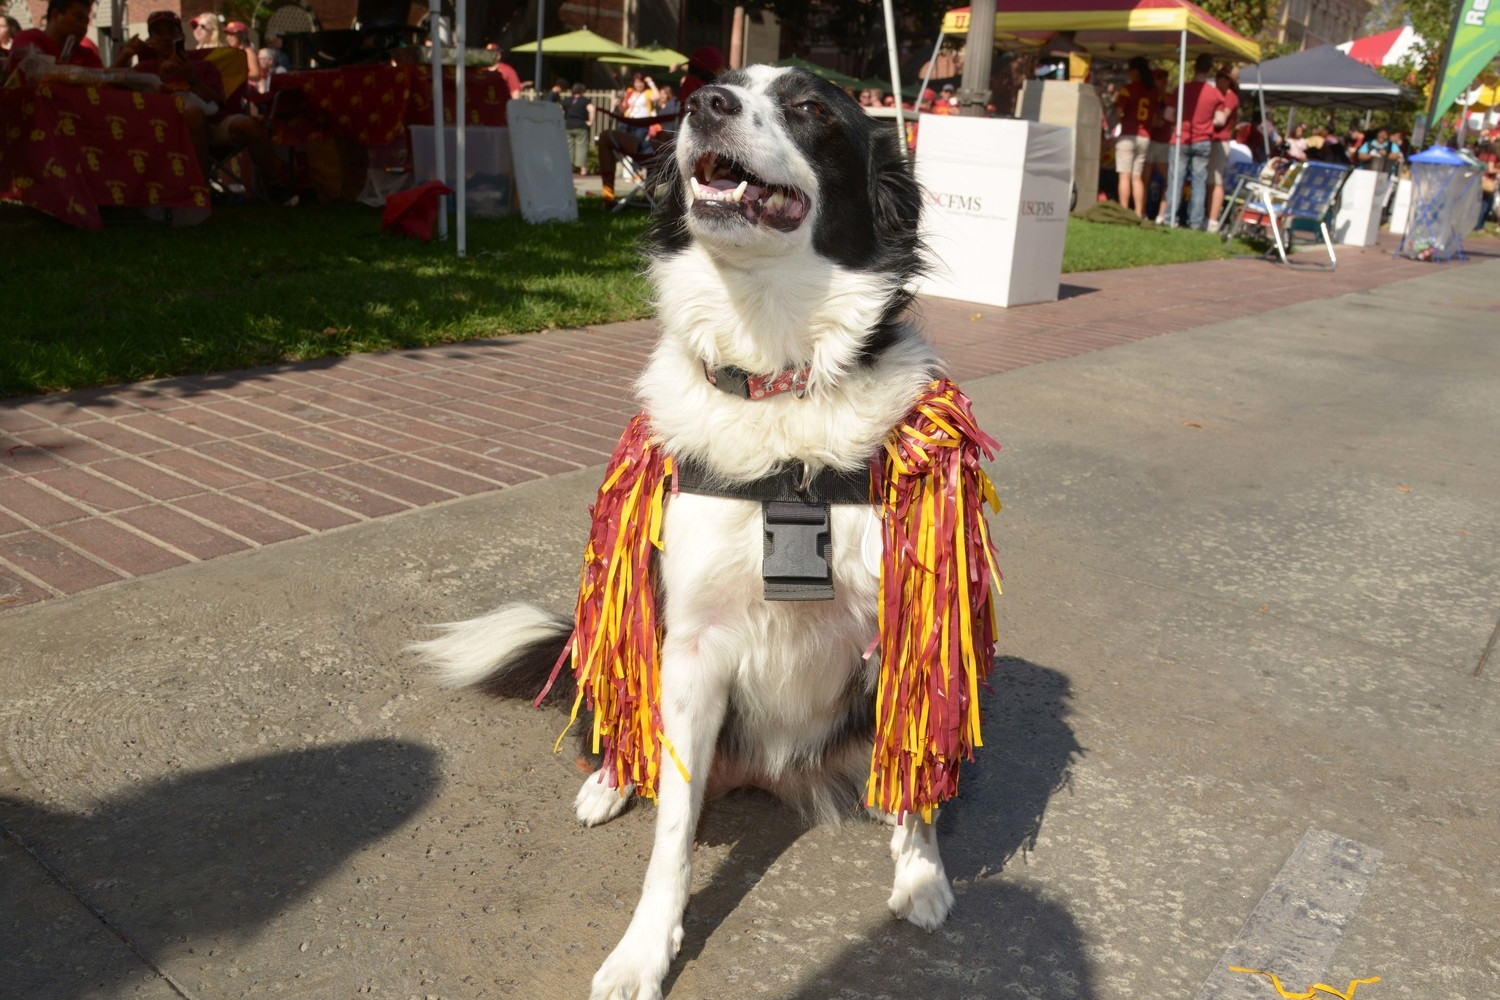 Apparently Southern Cal has a dog mascot named Yosemite. Yosemite National Park being located, of course, in Downtown Los Angeles.